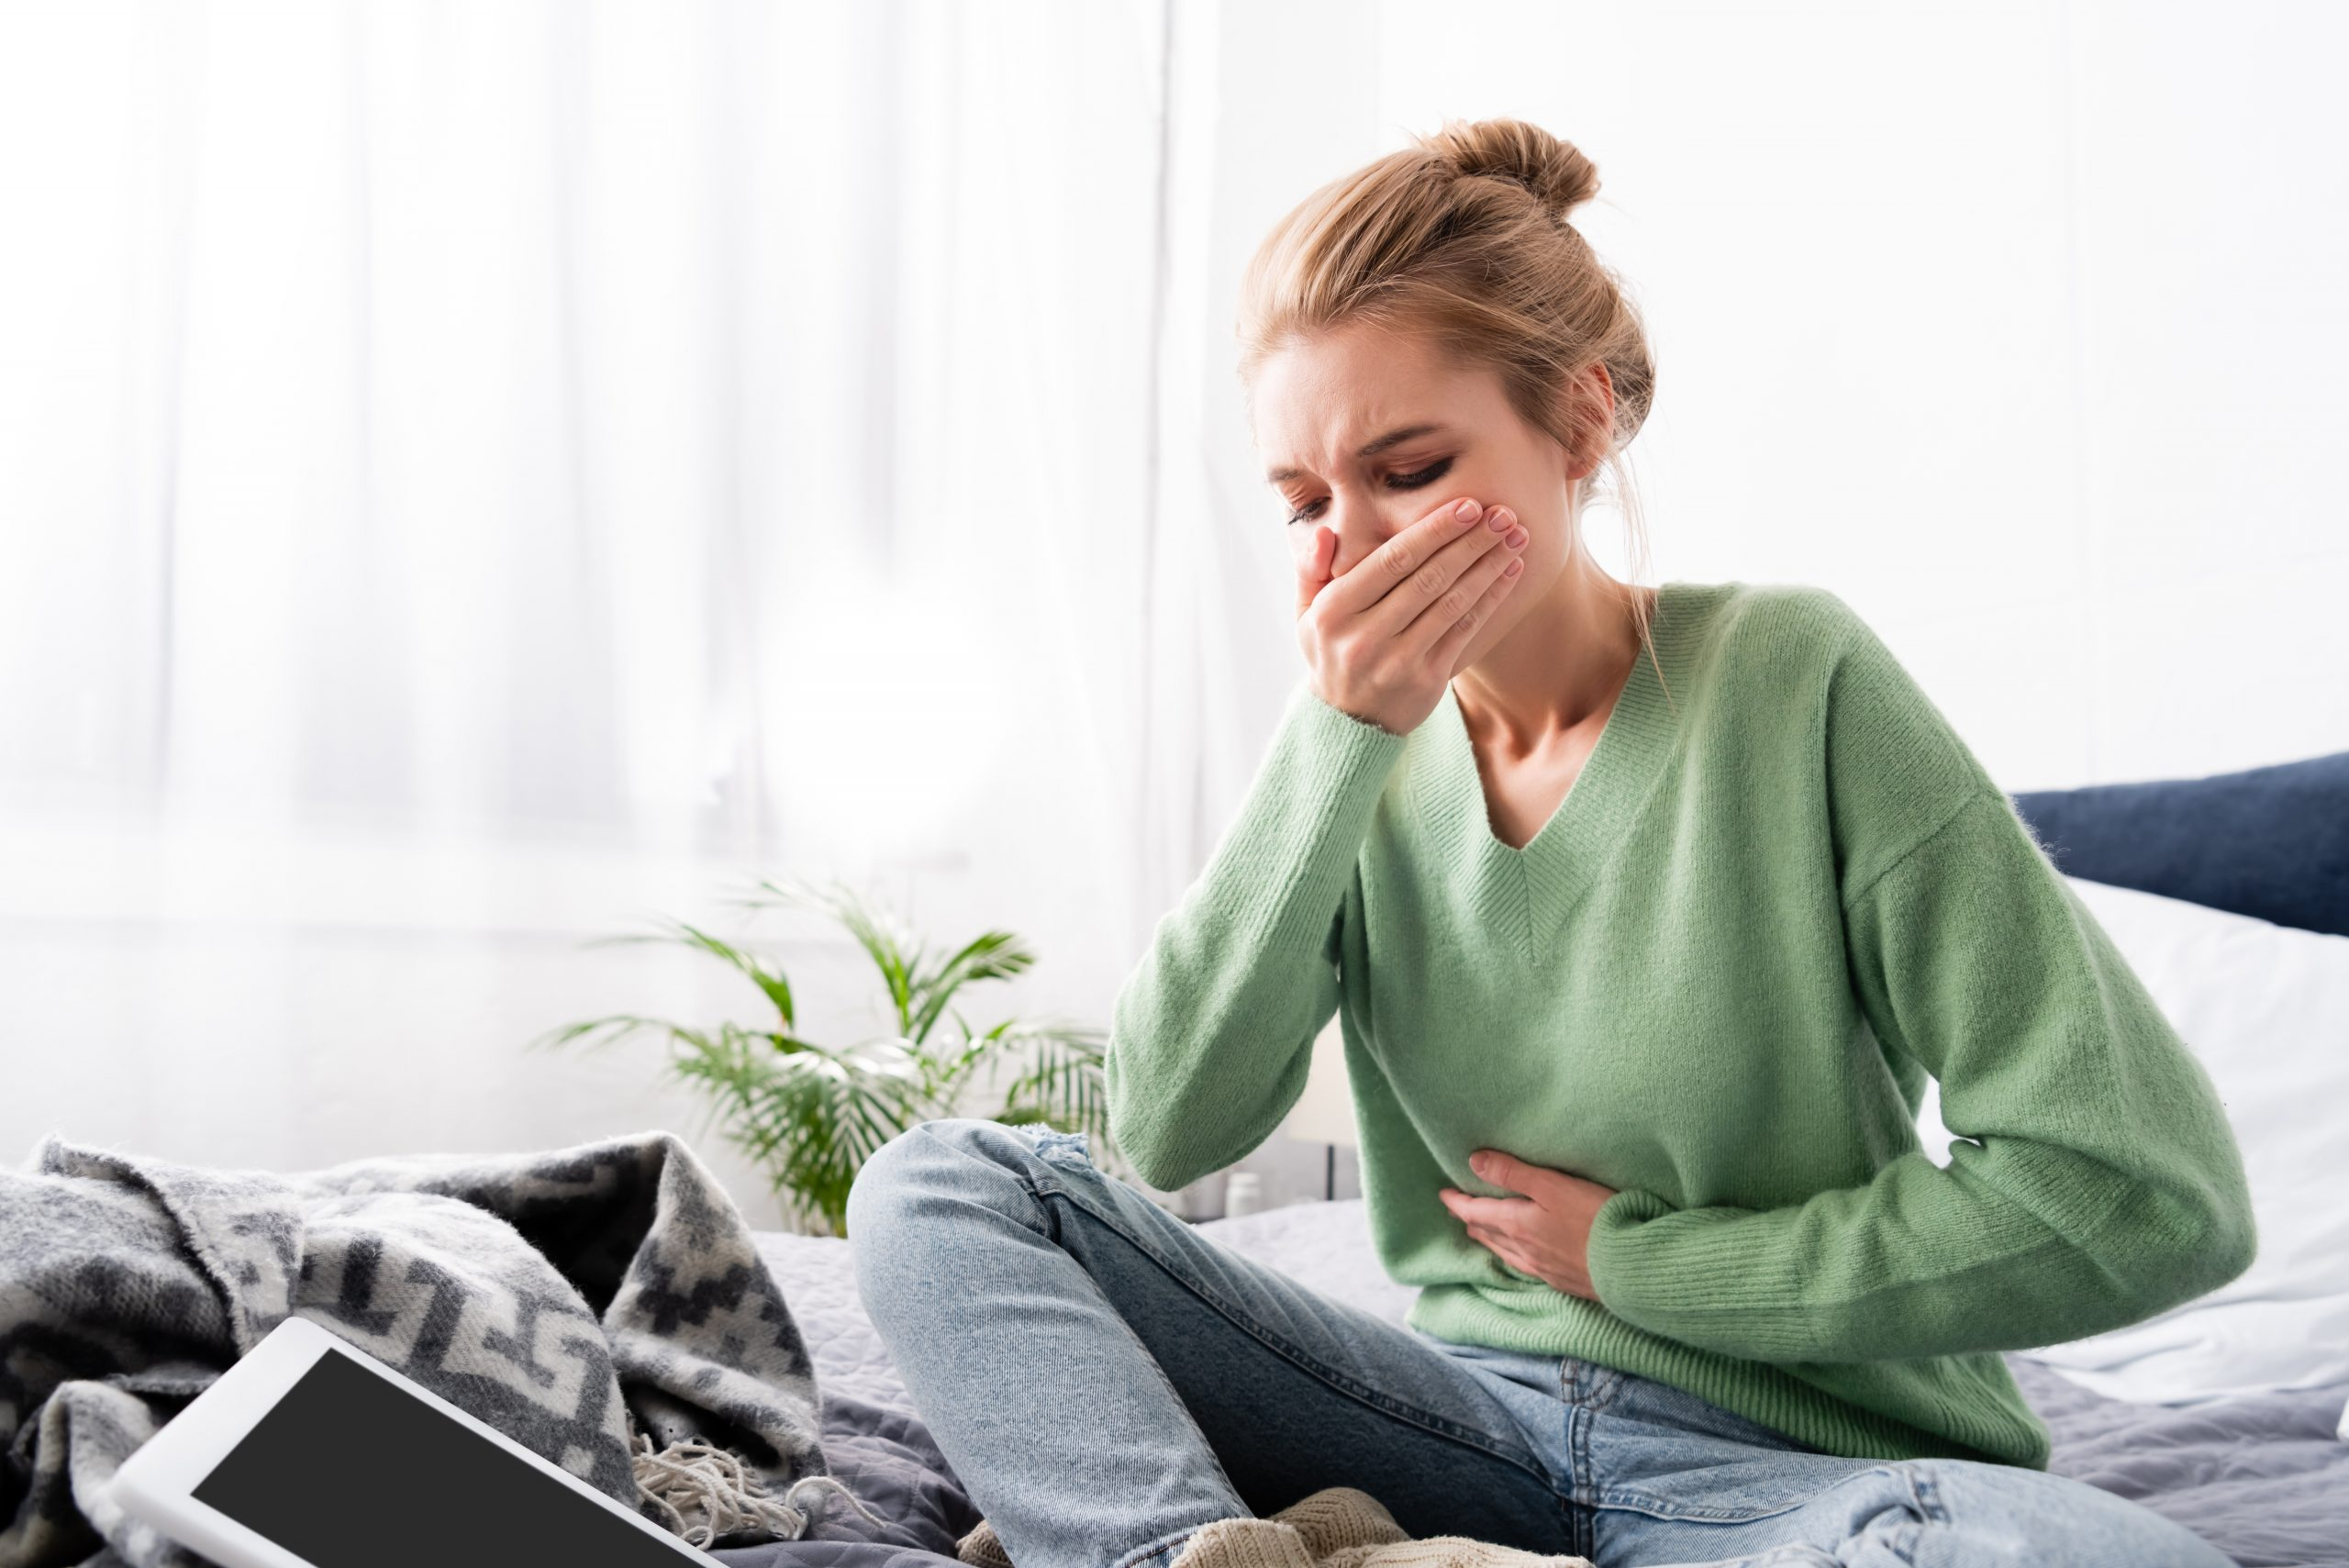 woman having early signs of pregnancy morning sickness nausea